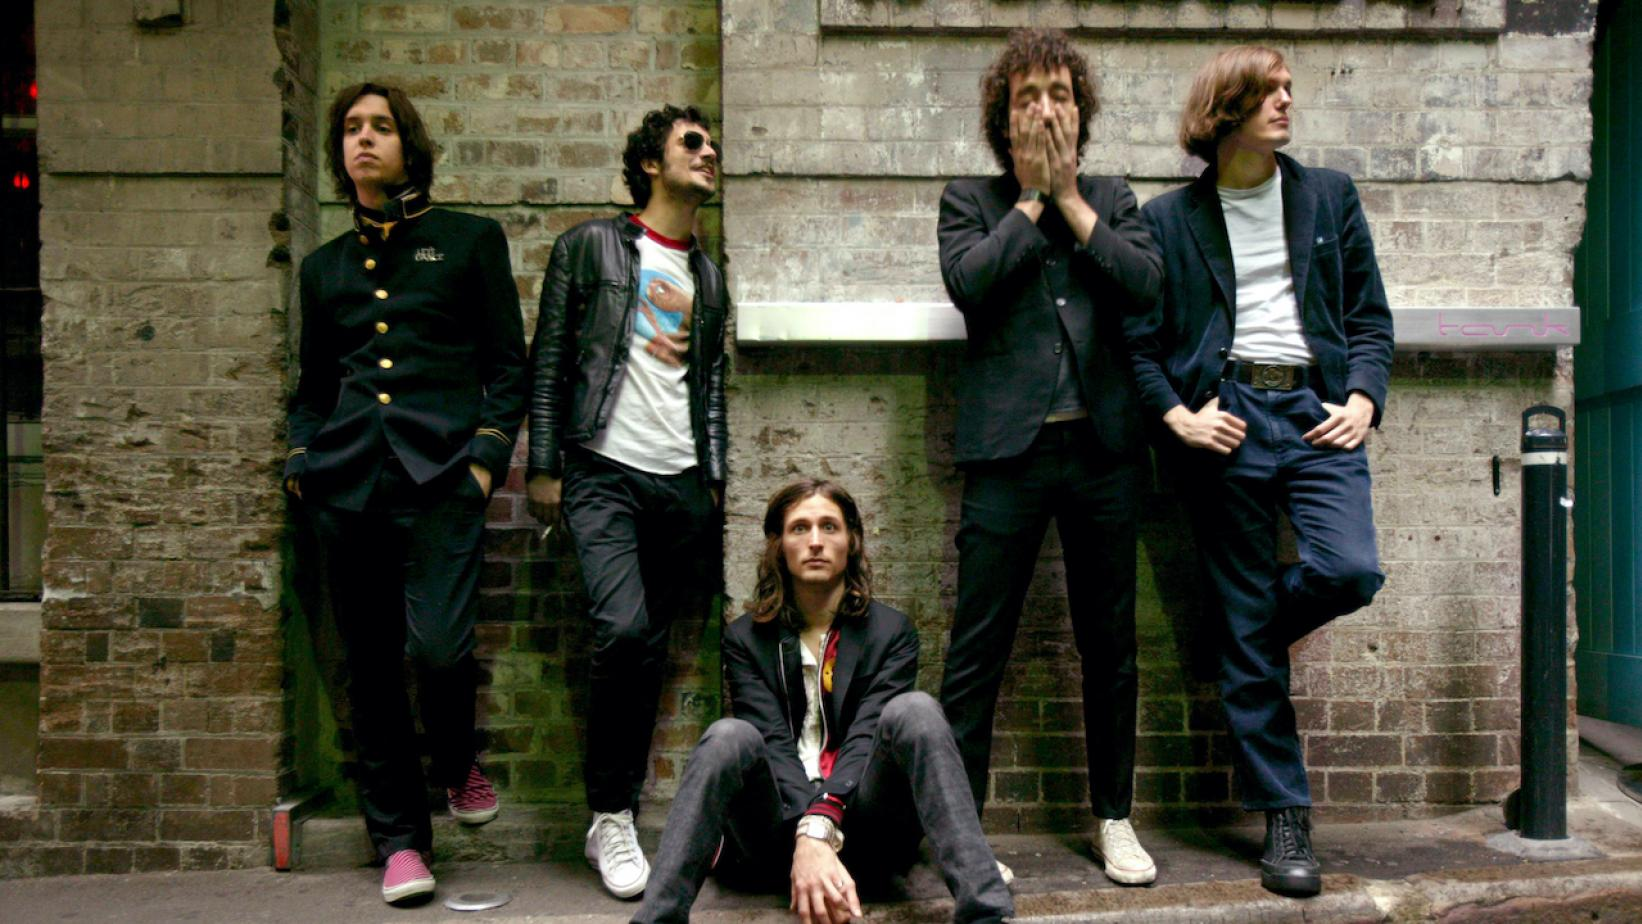 The Strokes positioned in front of a brick wall